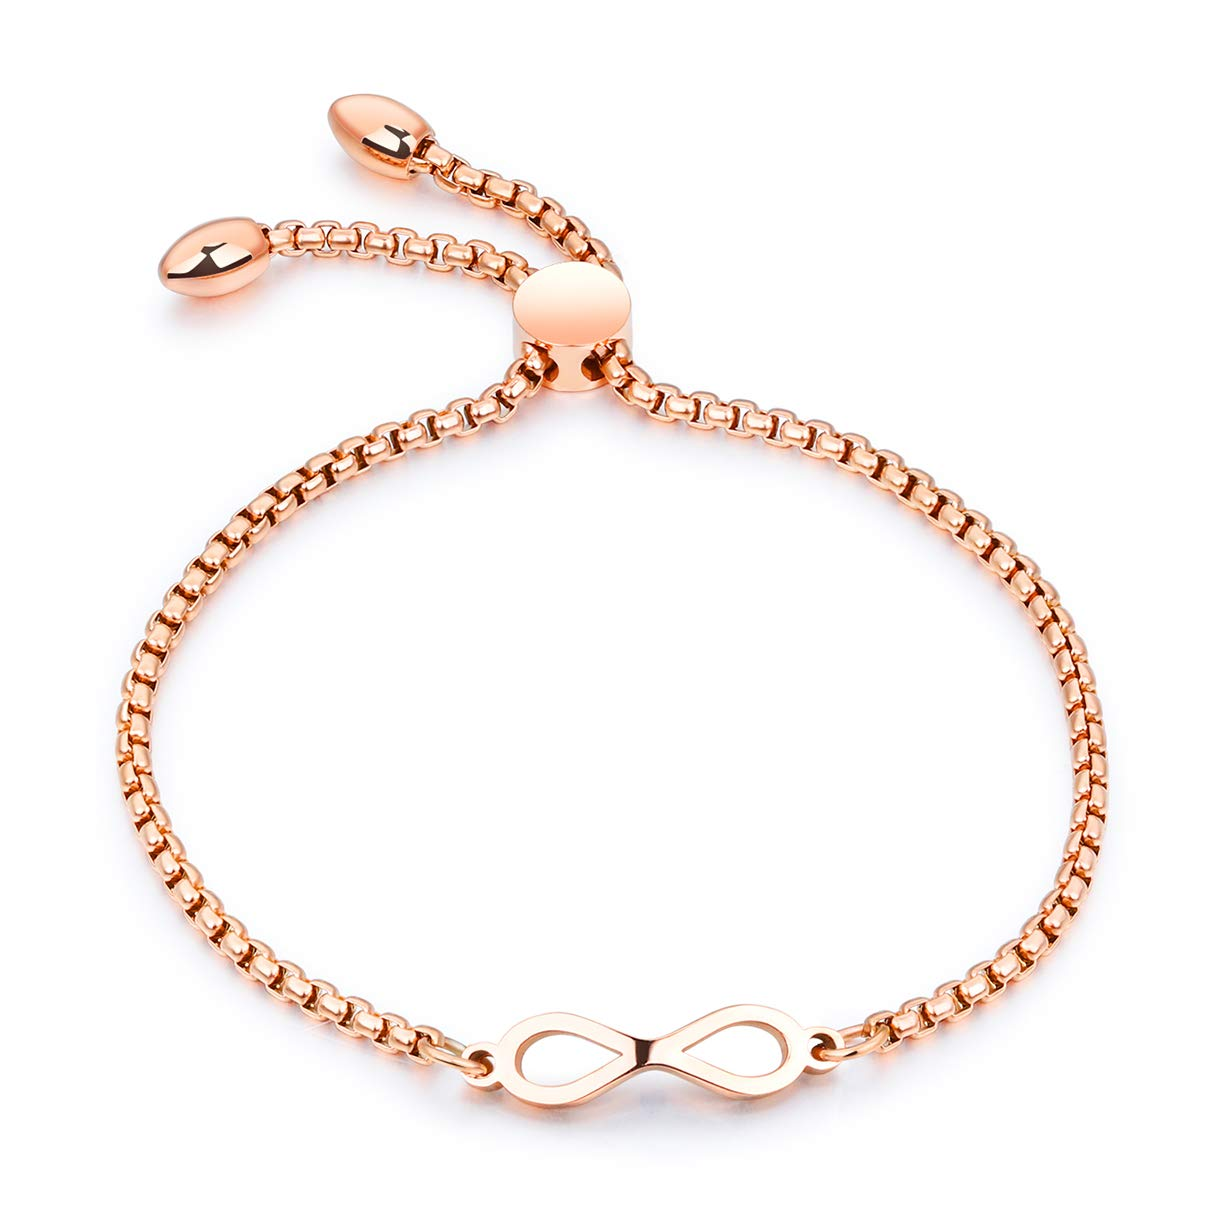 CHARMFAME Korean Style Adjustable Rose Gold Plated Stainless Steel Infinity Bracelet Fashion Jewelry for Women /& Girls